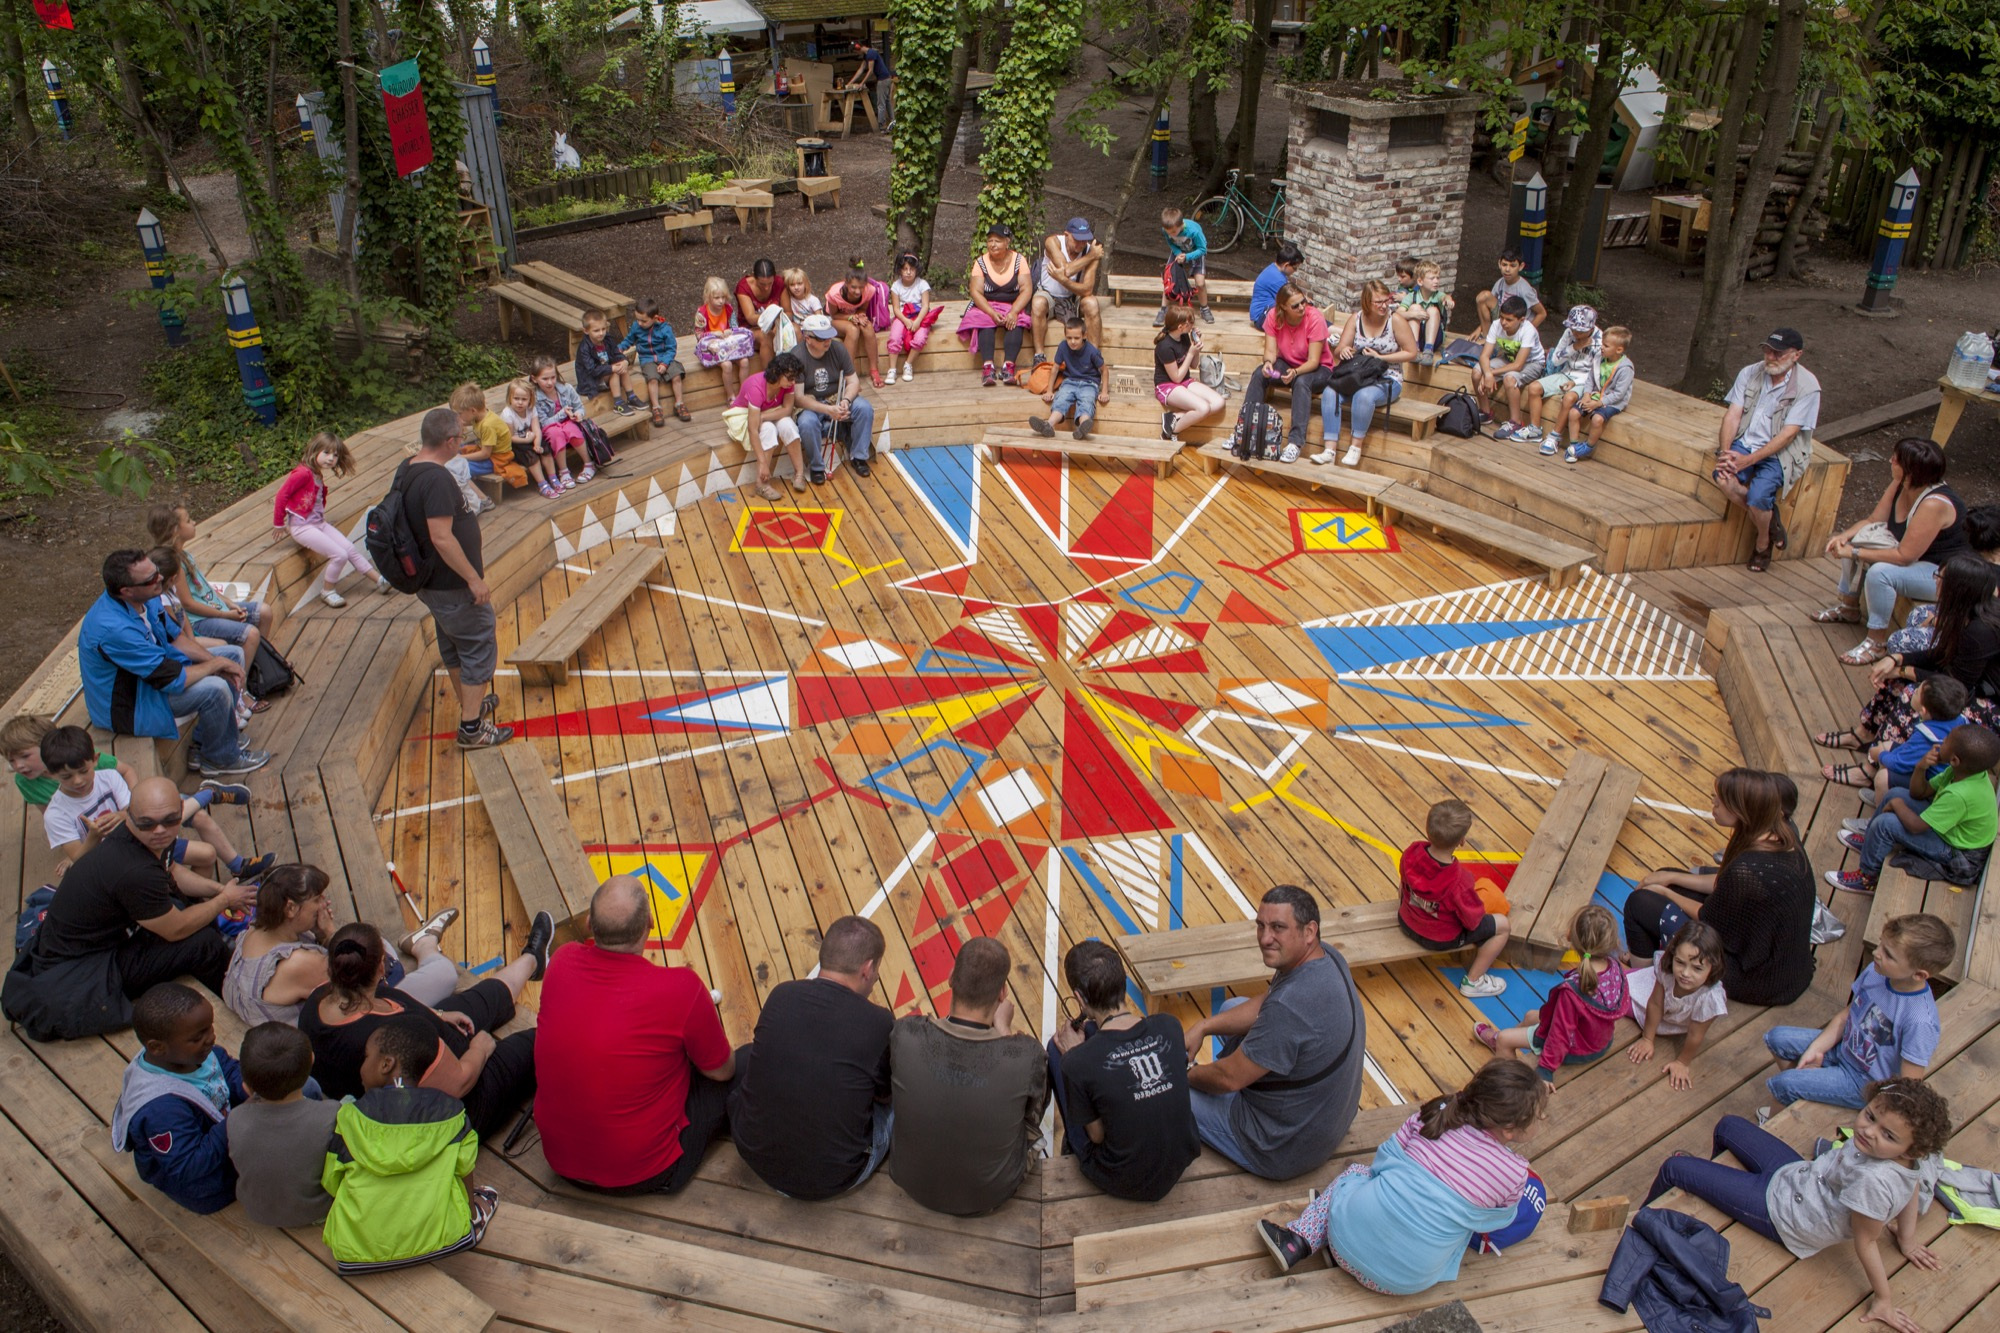 Photo of people sitting in a round wood seating arrangement